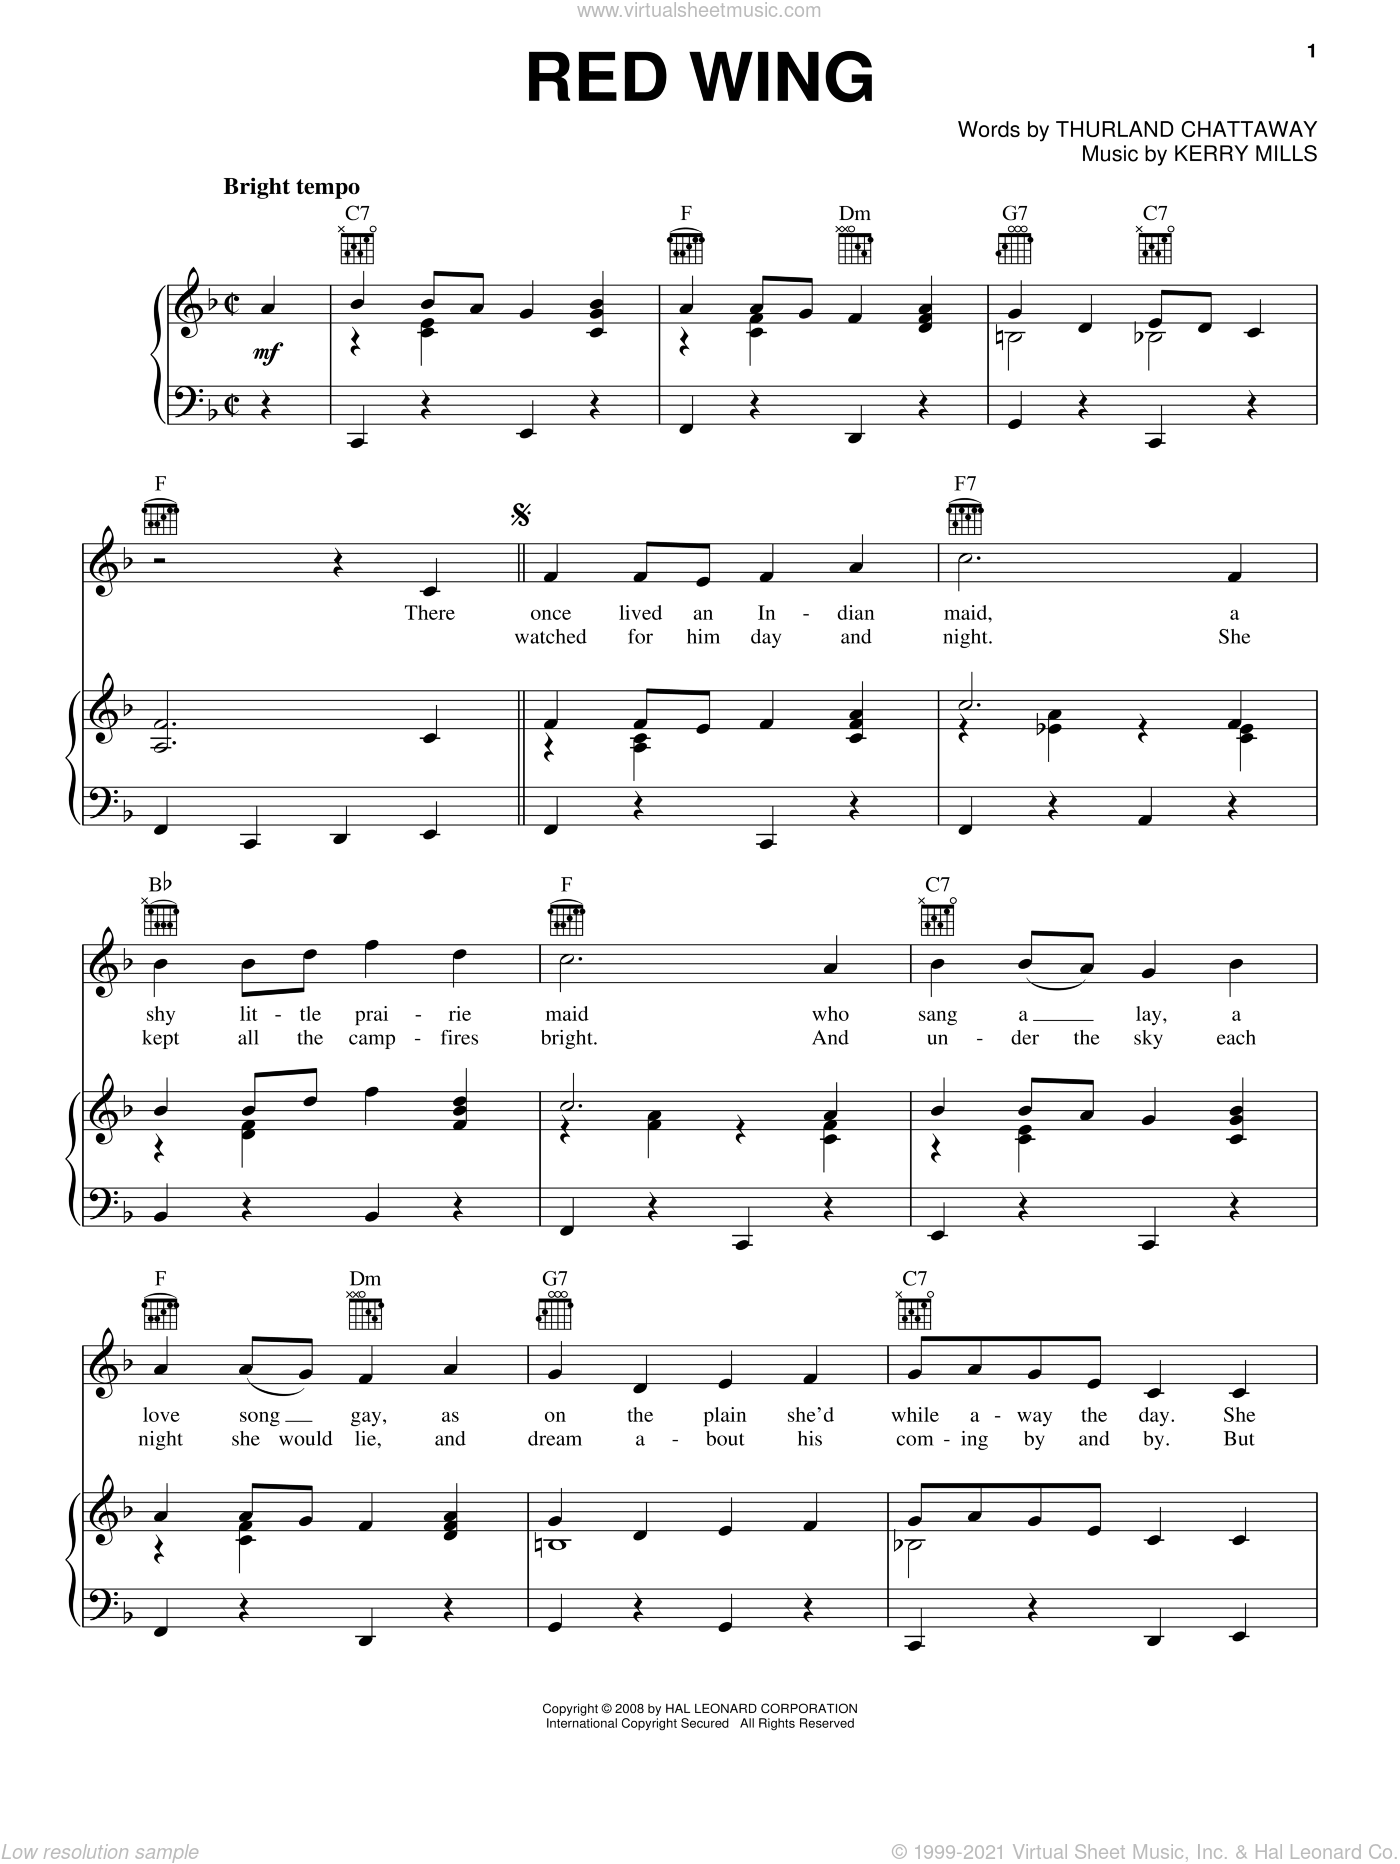 Red Wing sheet music for voice, piano or guitar by Kerry Mills